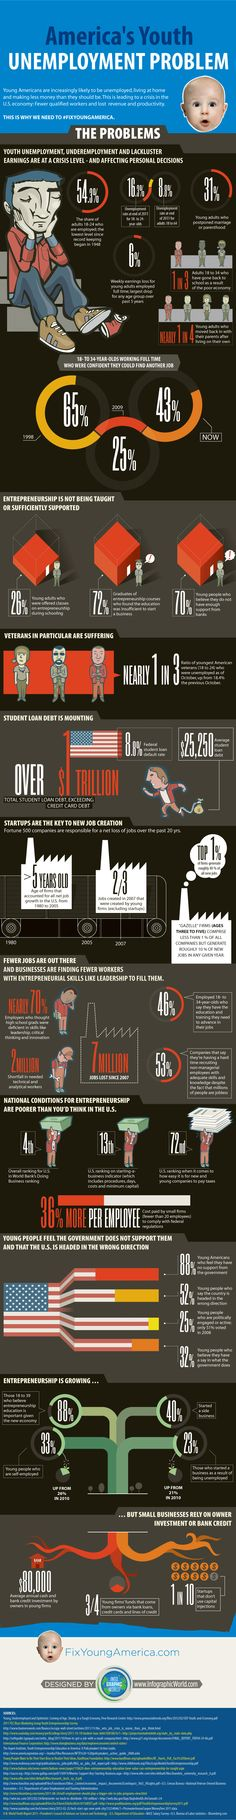 America's Youth Unemployment Problem infographic